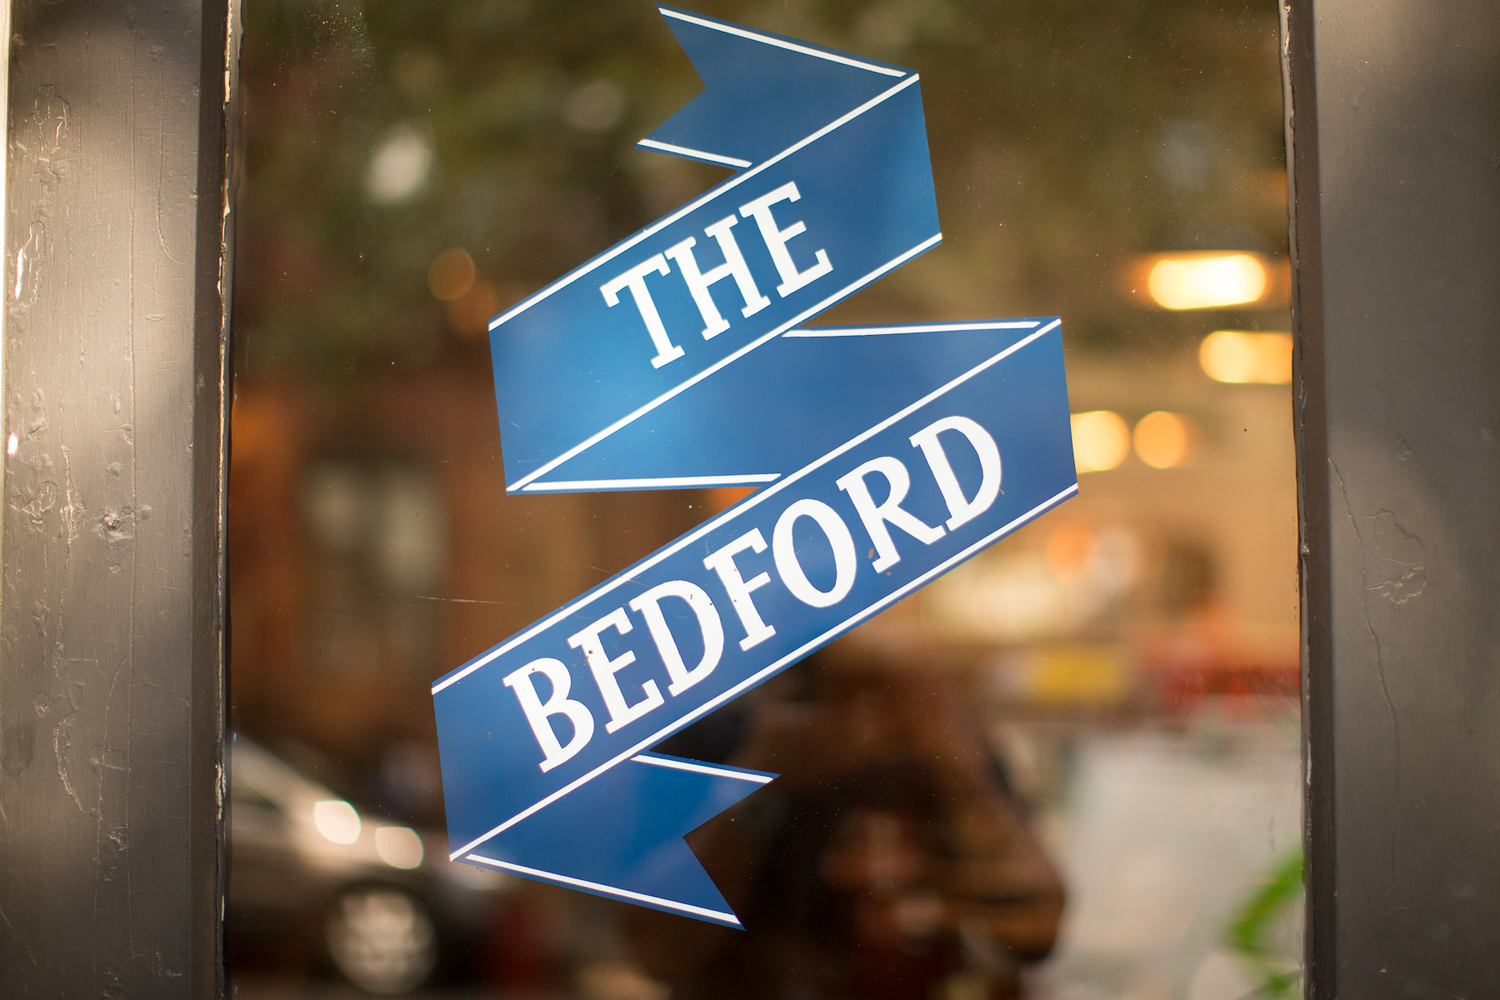 The Bedford